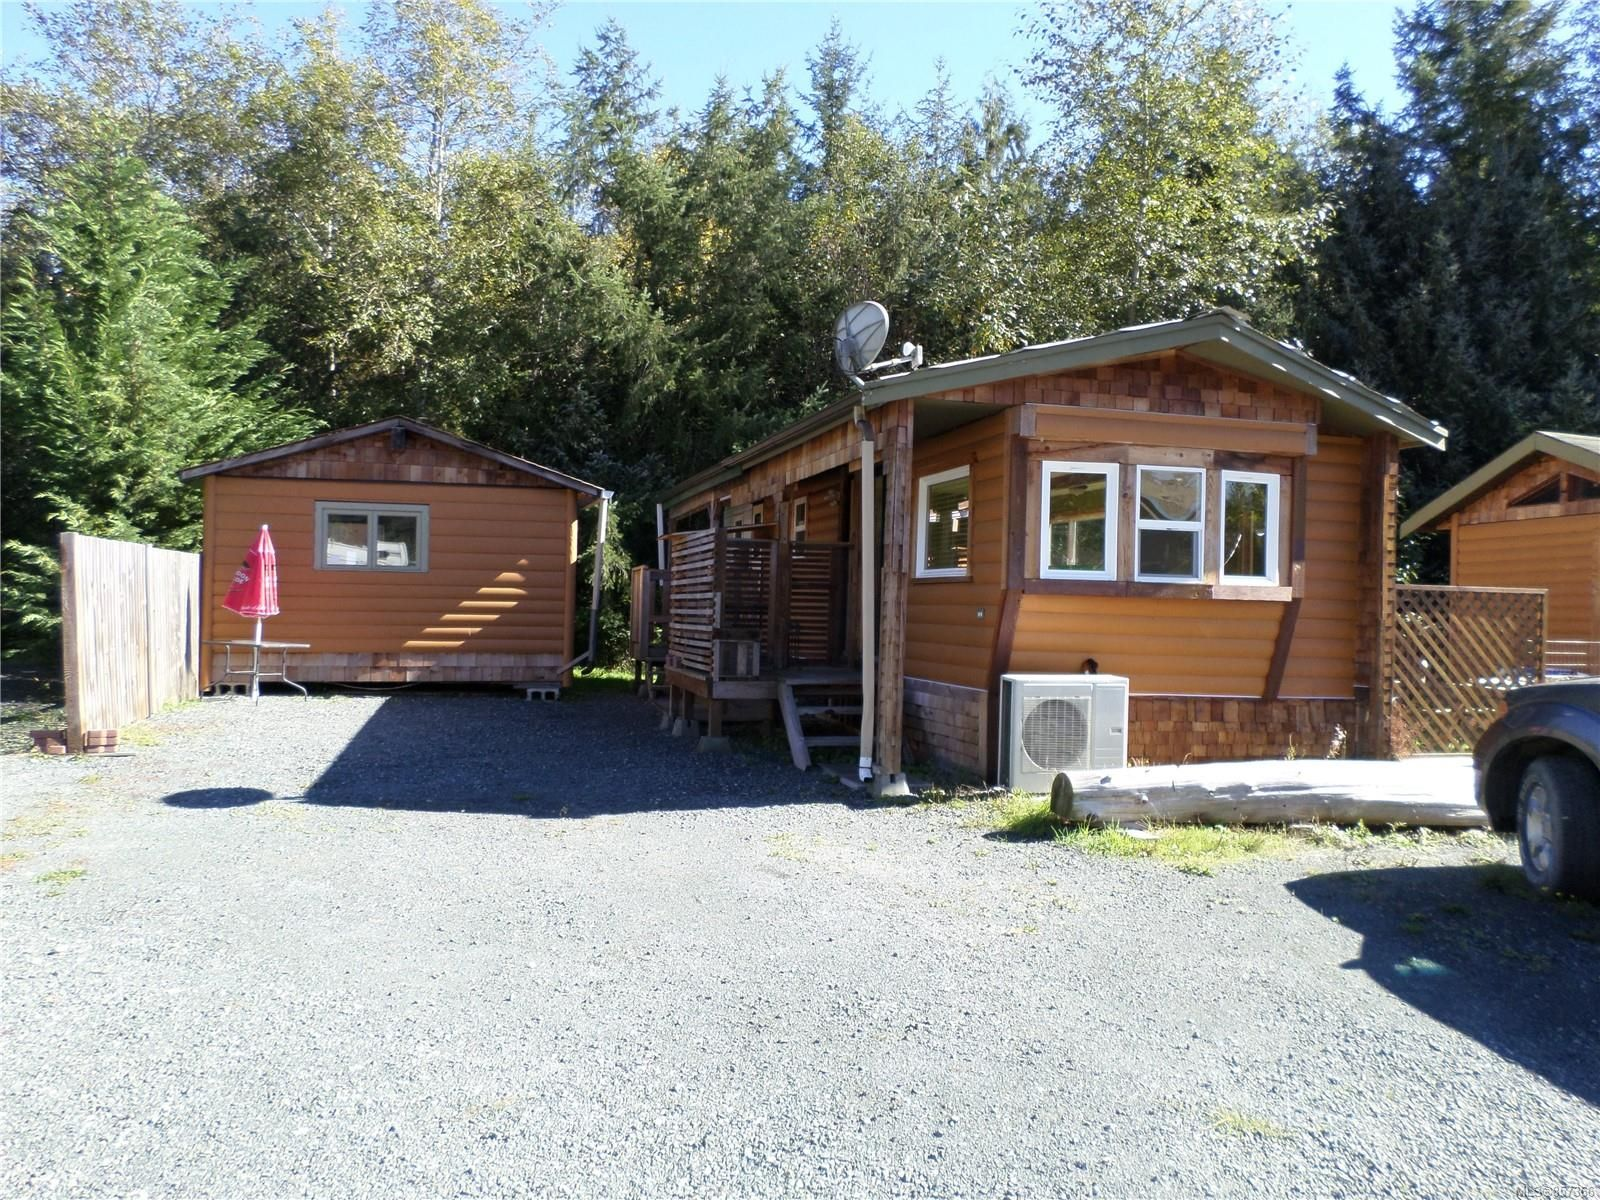 Photo 10: Photos: 1747 Nahmint Rd in : PQ Qualicum North Mixed Use for sale (Parksville/Qualicum)  : MLS®# 857366